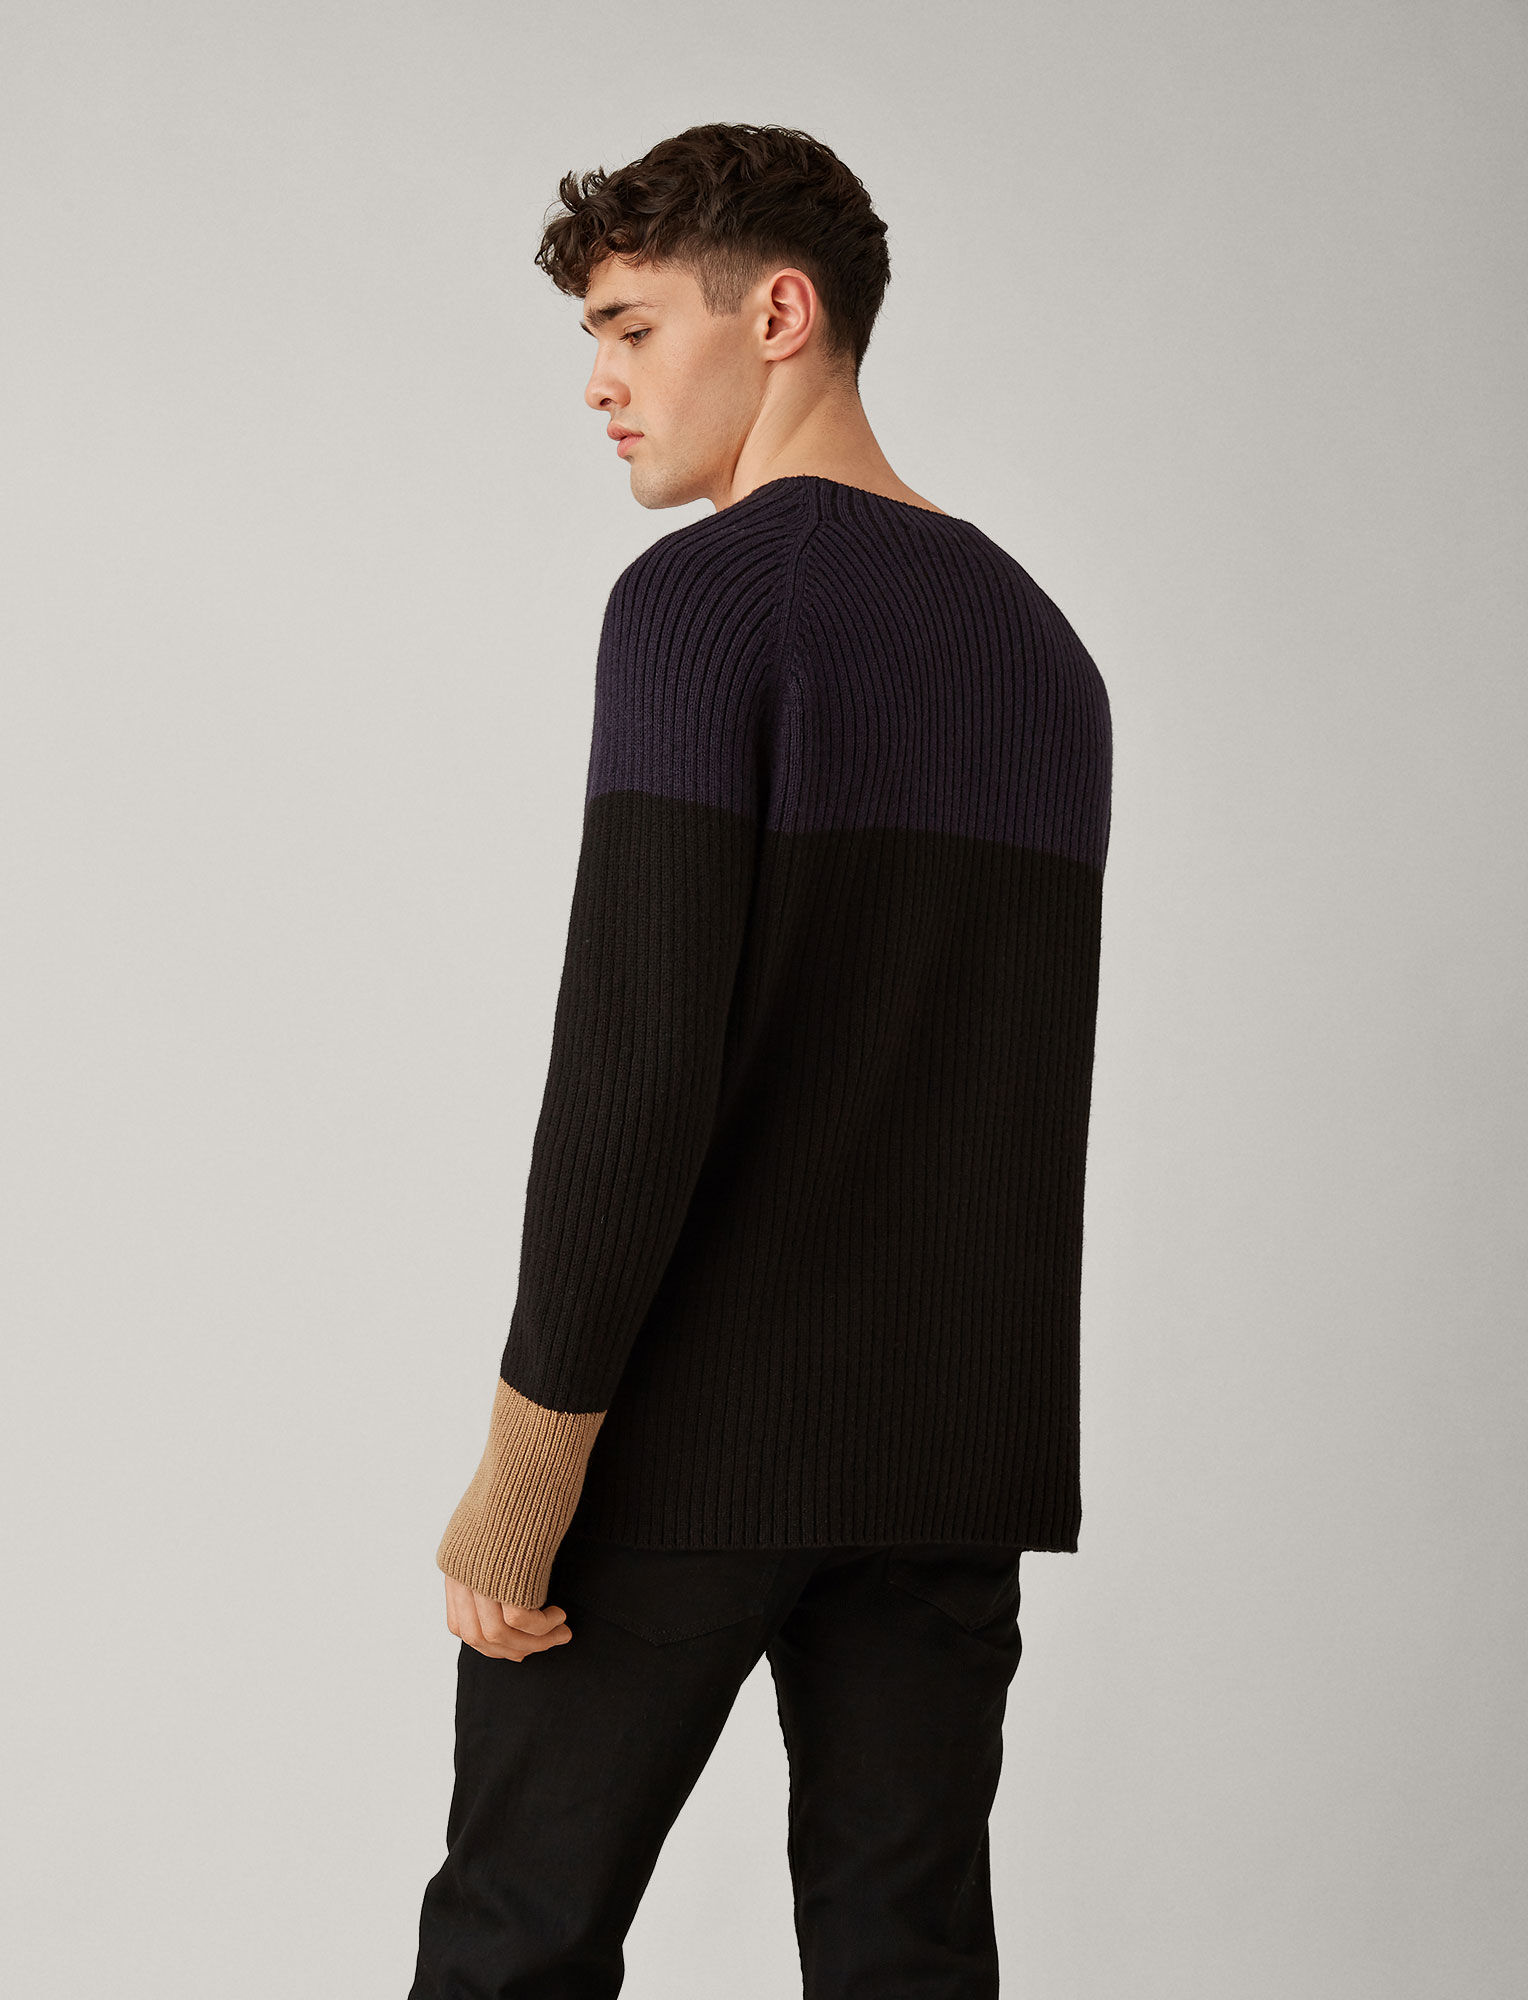 Joseph, Soft Wool Block Knit, in NAVY COMBO